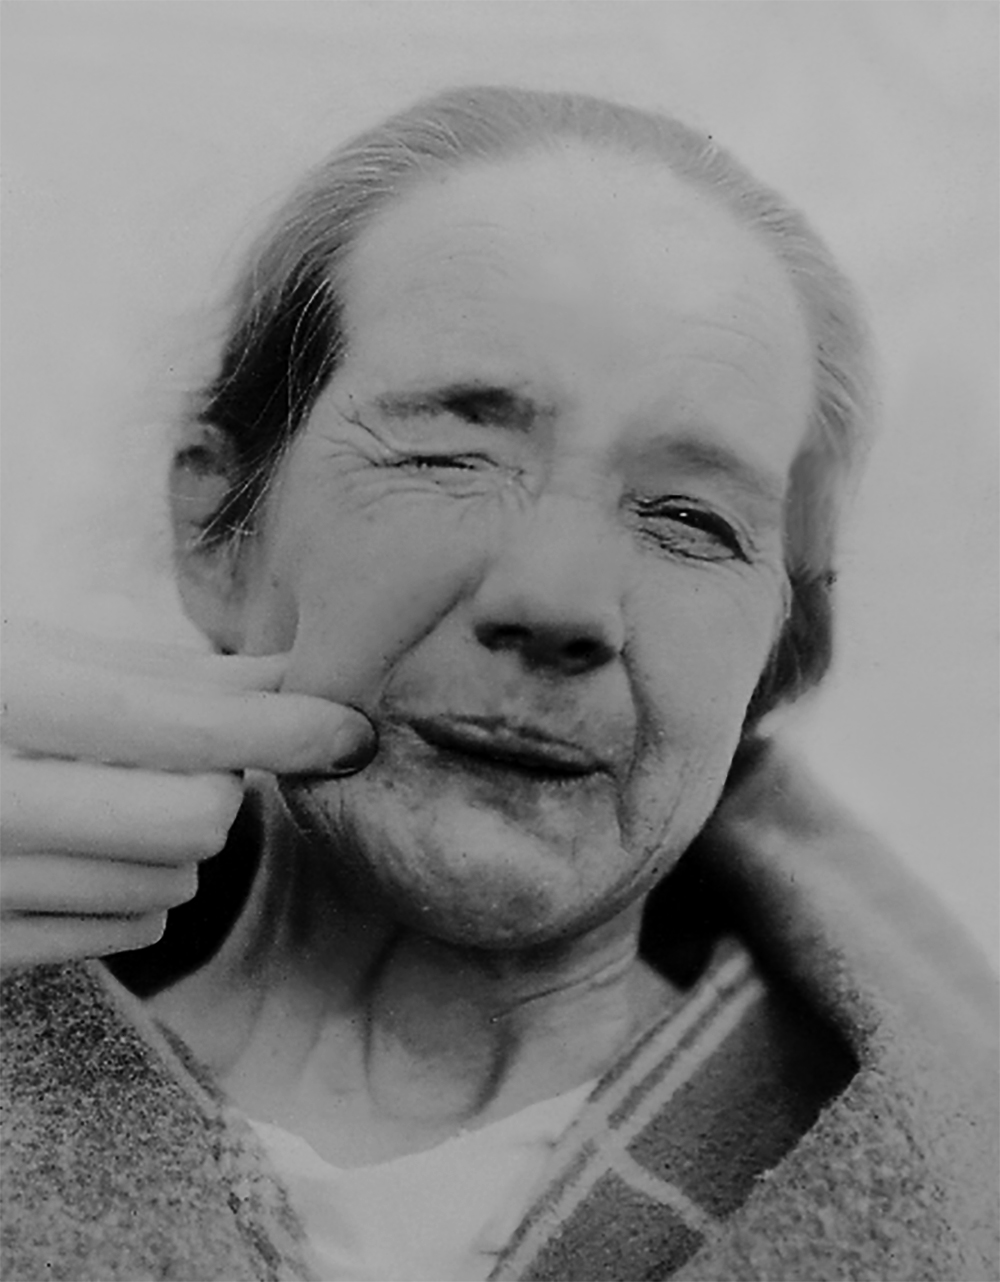 Figure 1: One of Cushing's patients (Circa 1920). Cushing is triggering the spasms by pinching the right side of the patient's face.